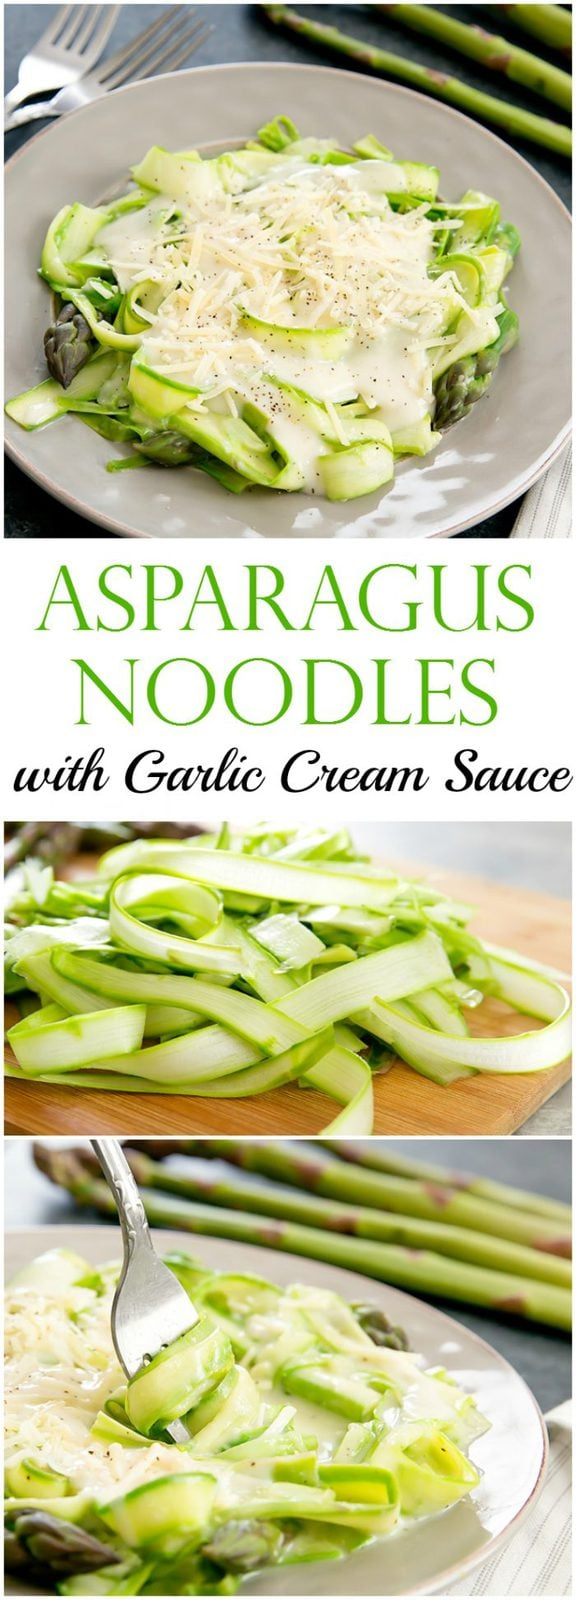 Asparagus Noodles with Skinny Garlic Cream Sauce